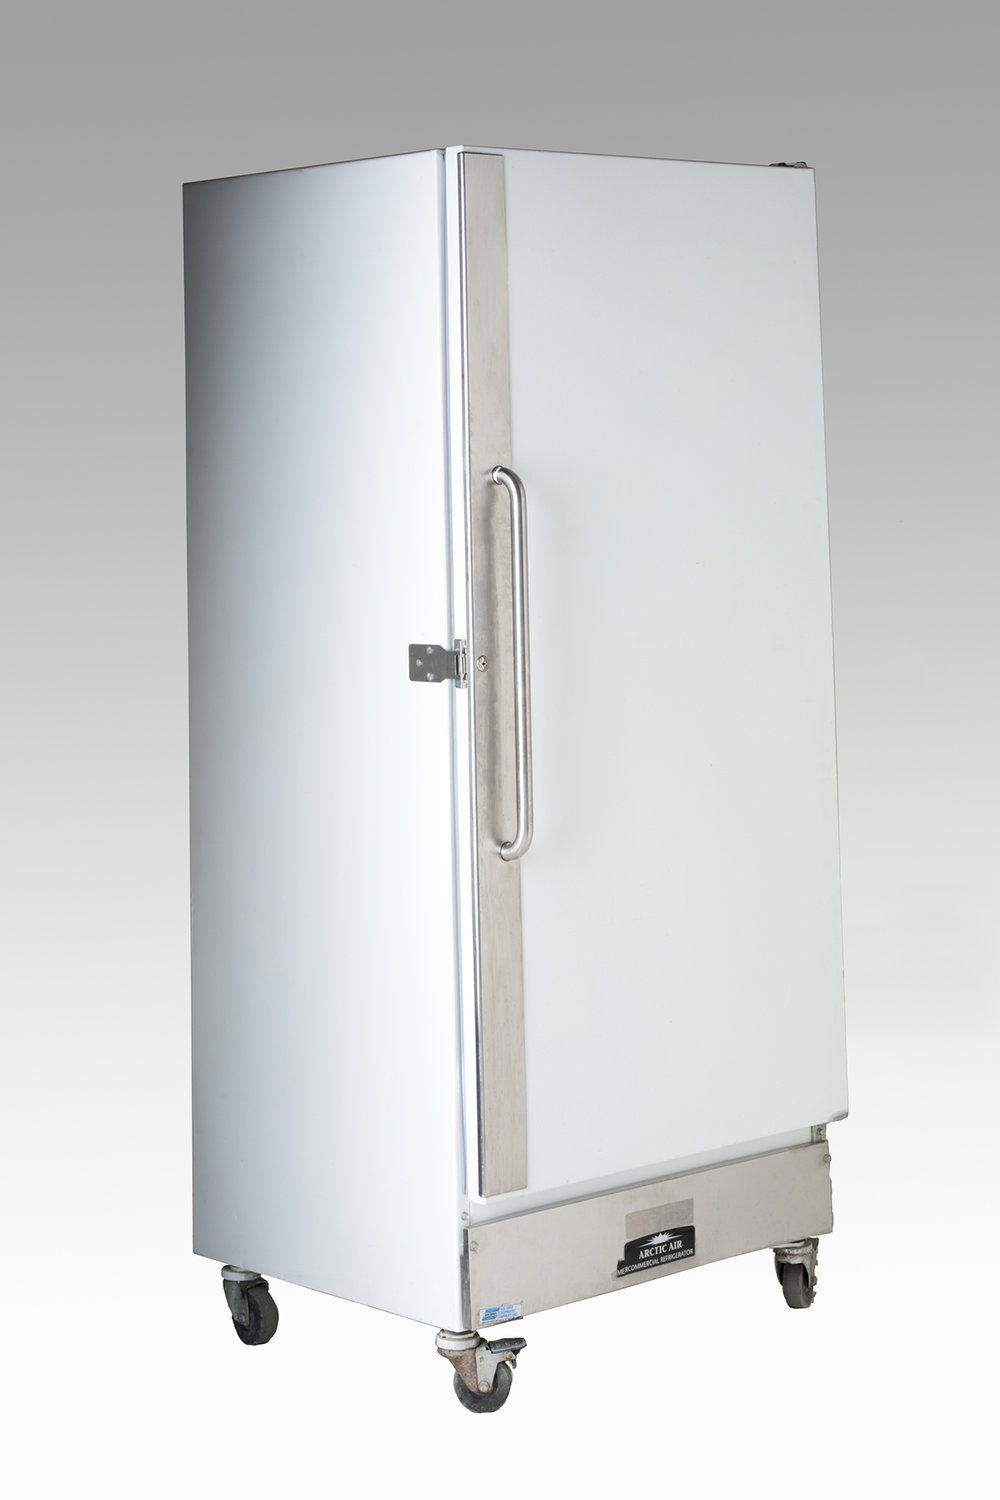 White Upright Refrigerator   22 cubic Feet  6 amps   $220.00